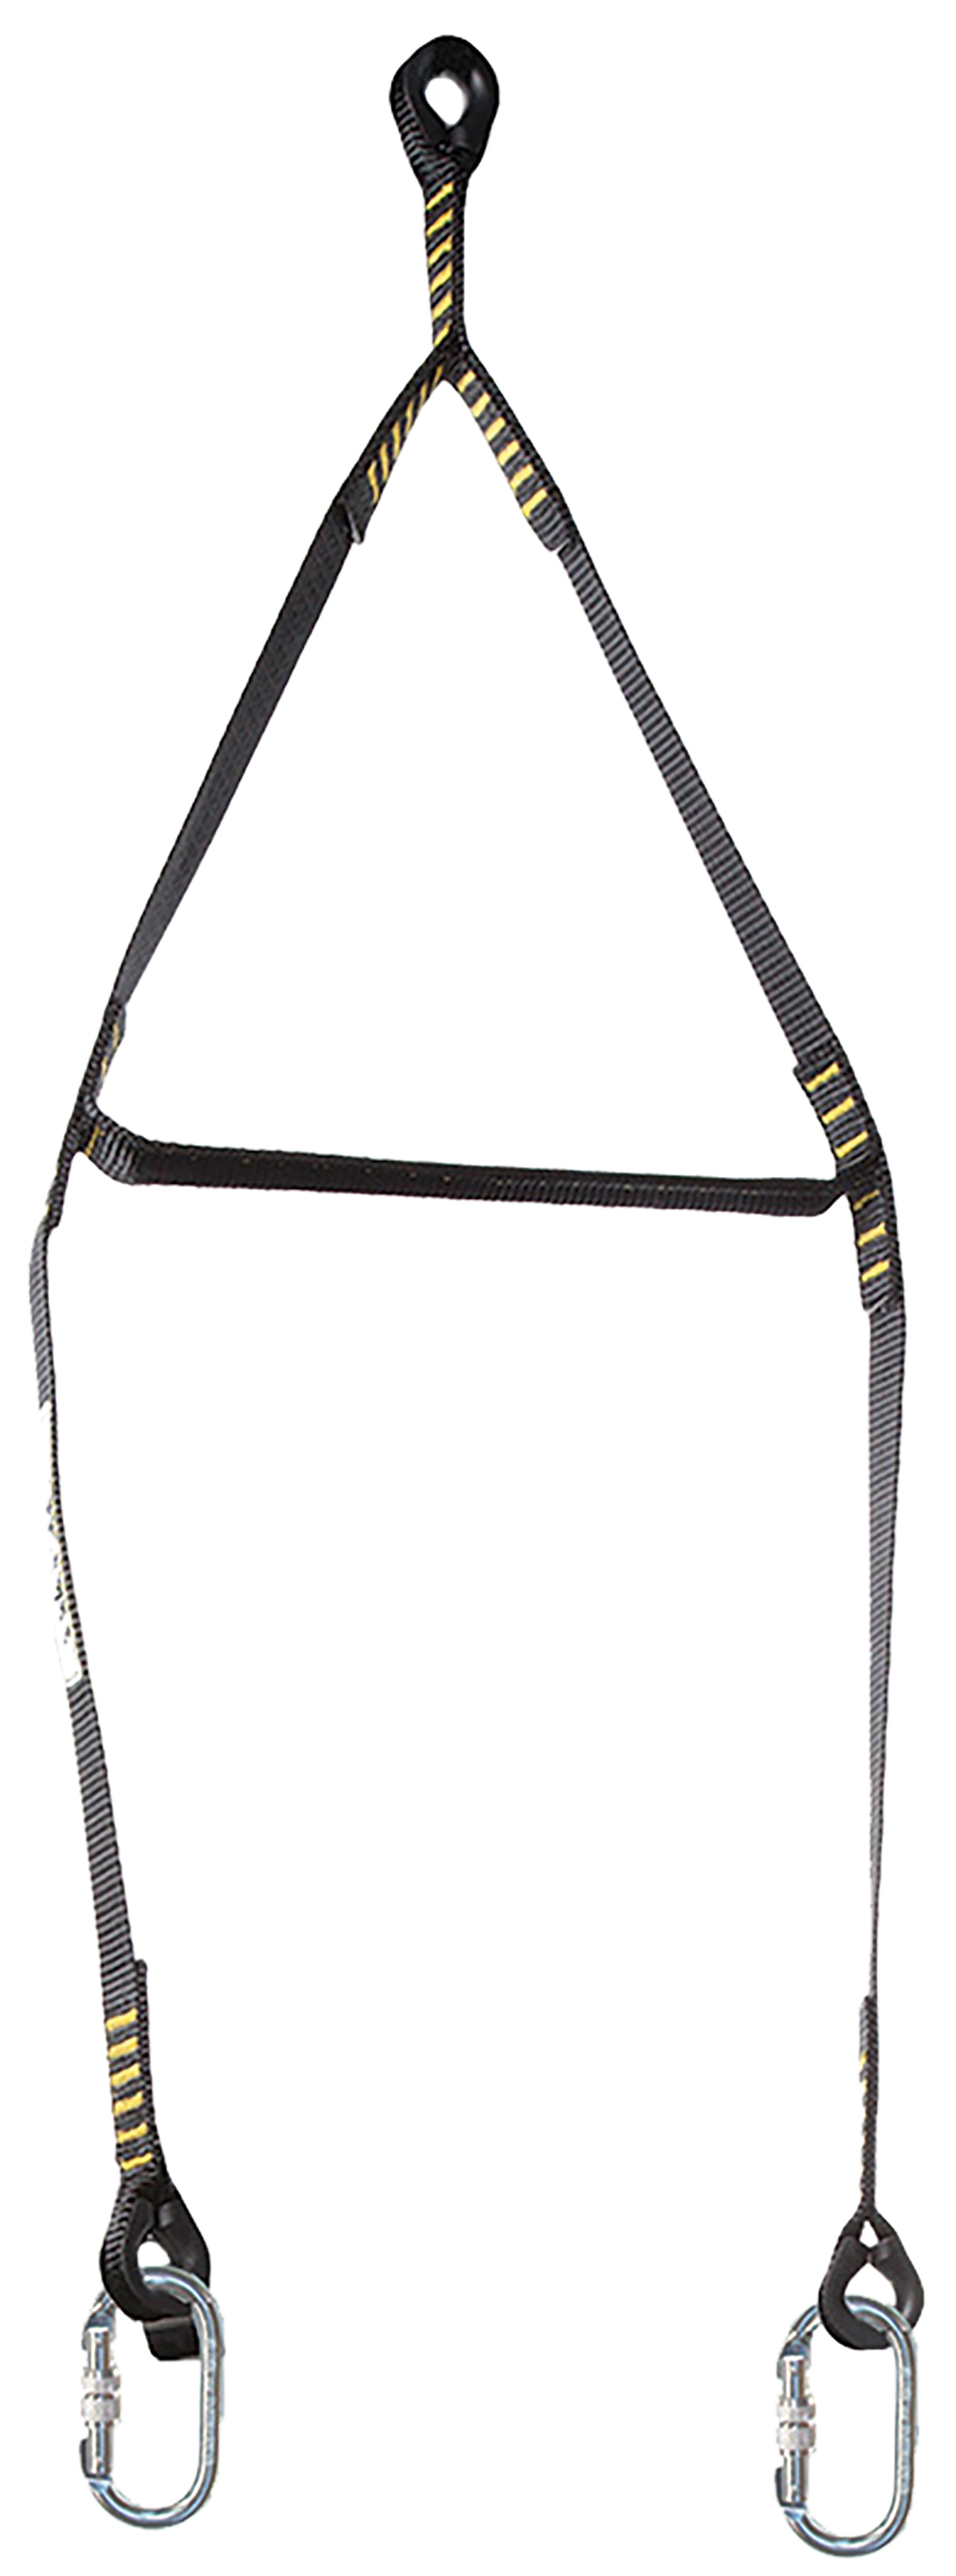 Spreader Bar With Carabiners